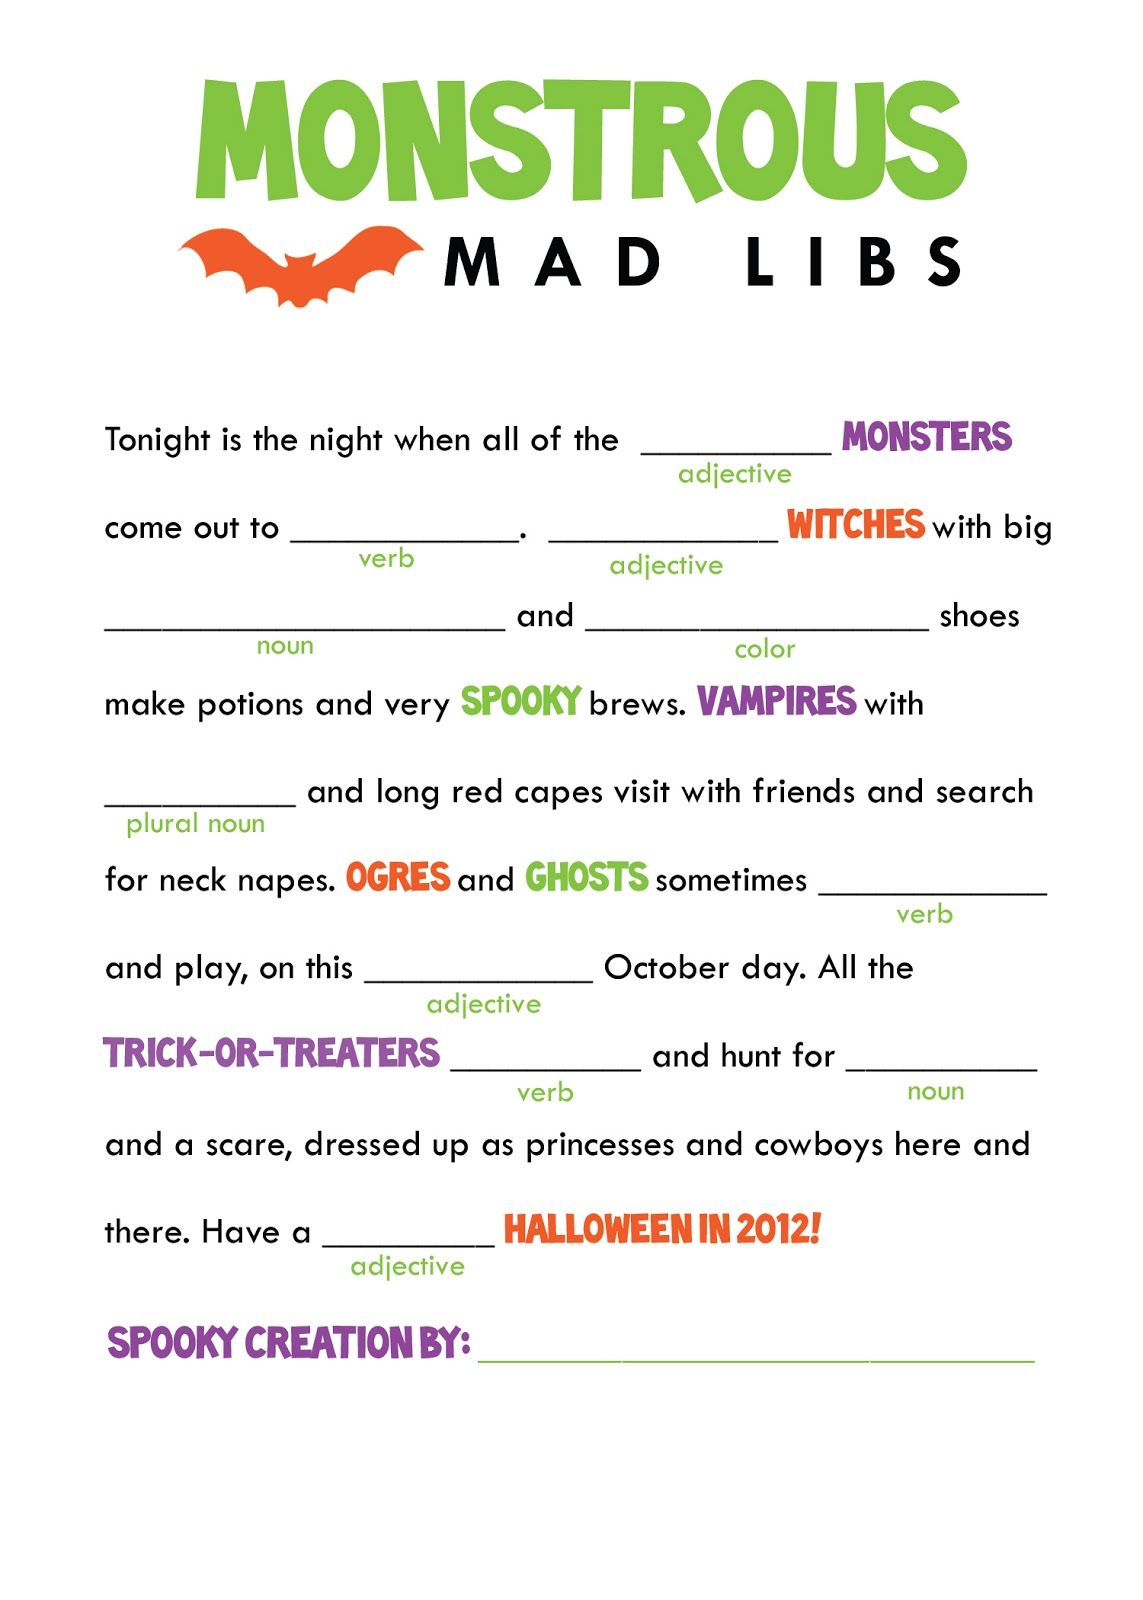 This is an image of Fan Printable Mad Libs for Kids